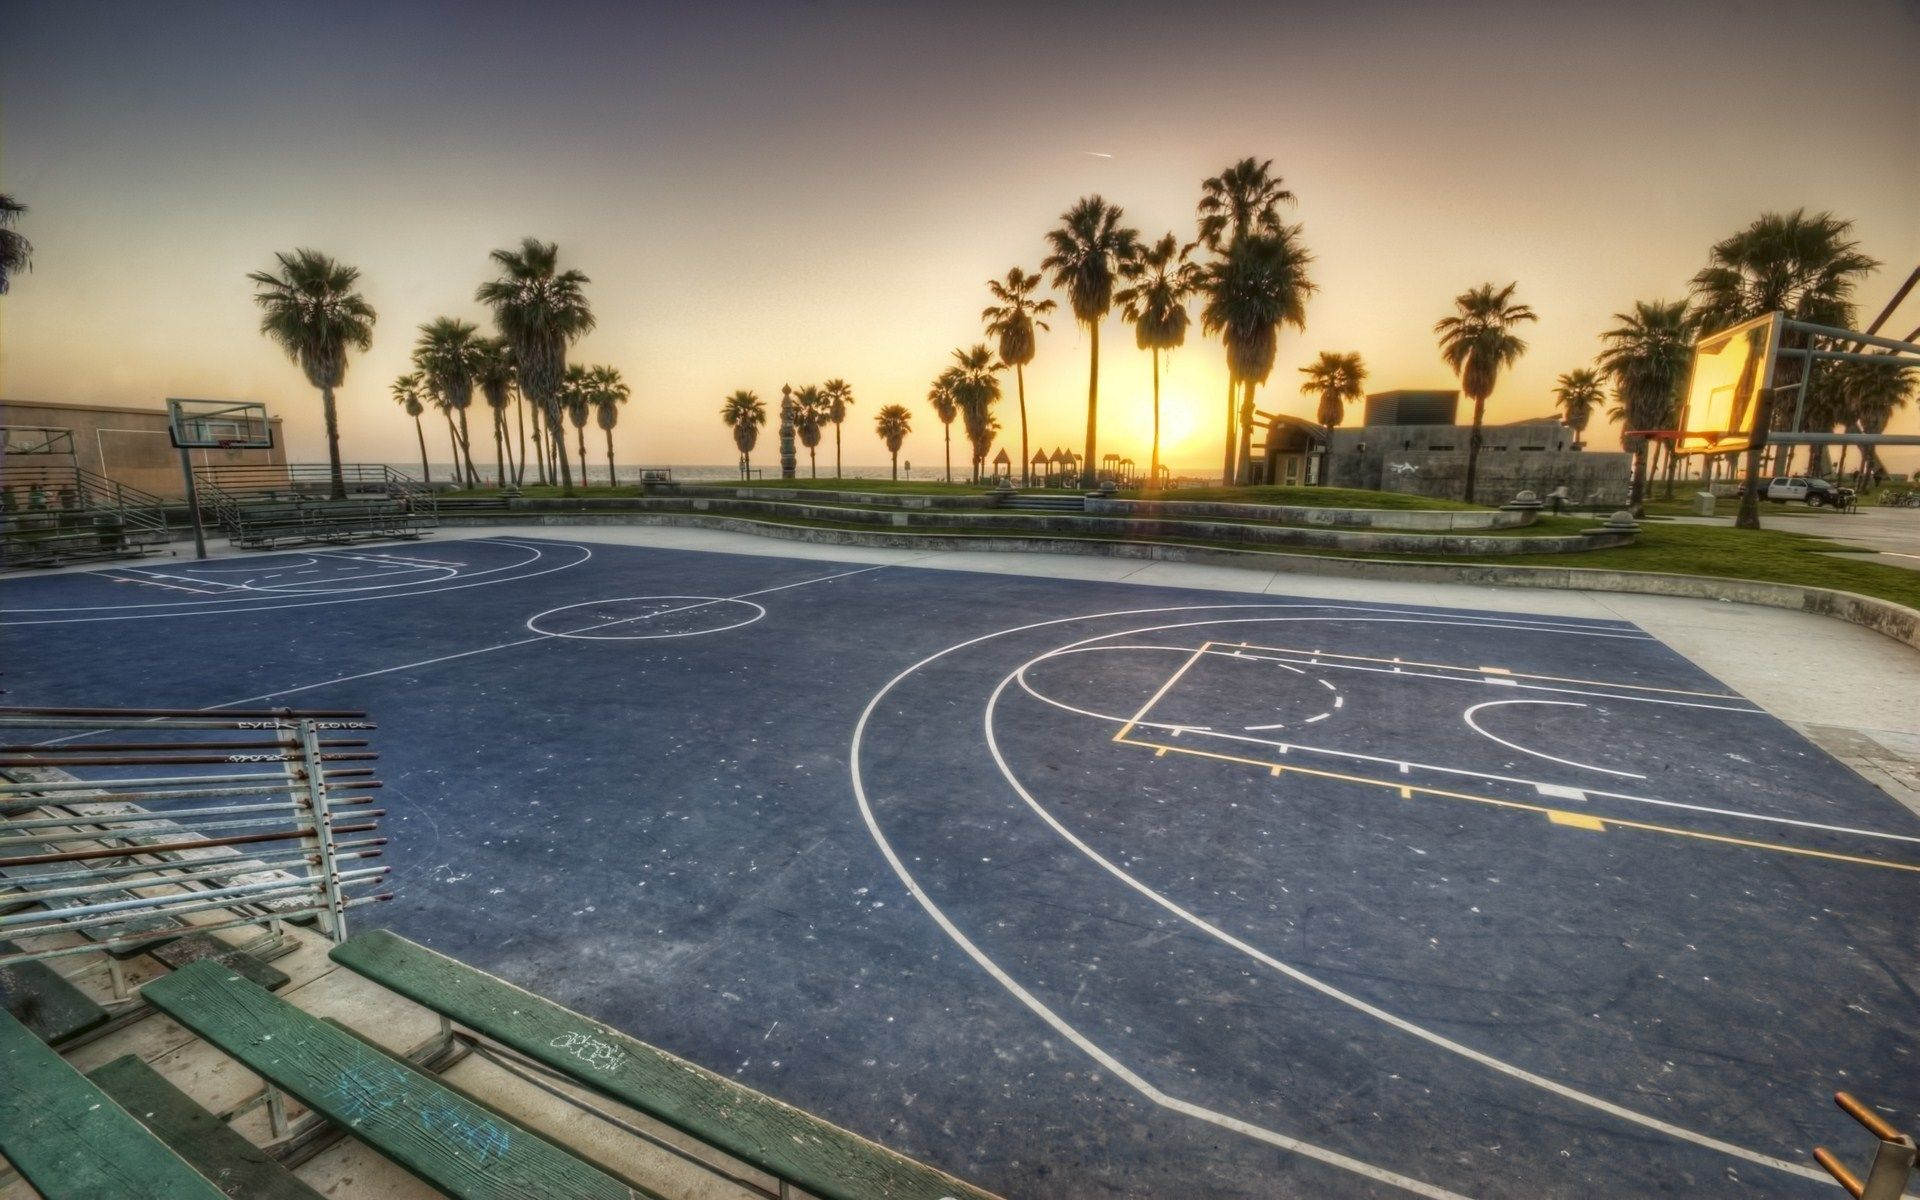 Venice Beach Basketball Los ngeles ngeles y Baloncesto 1920x1200